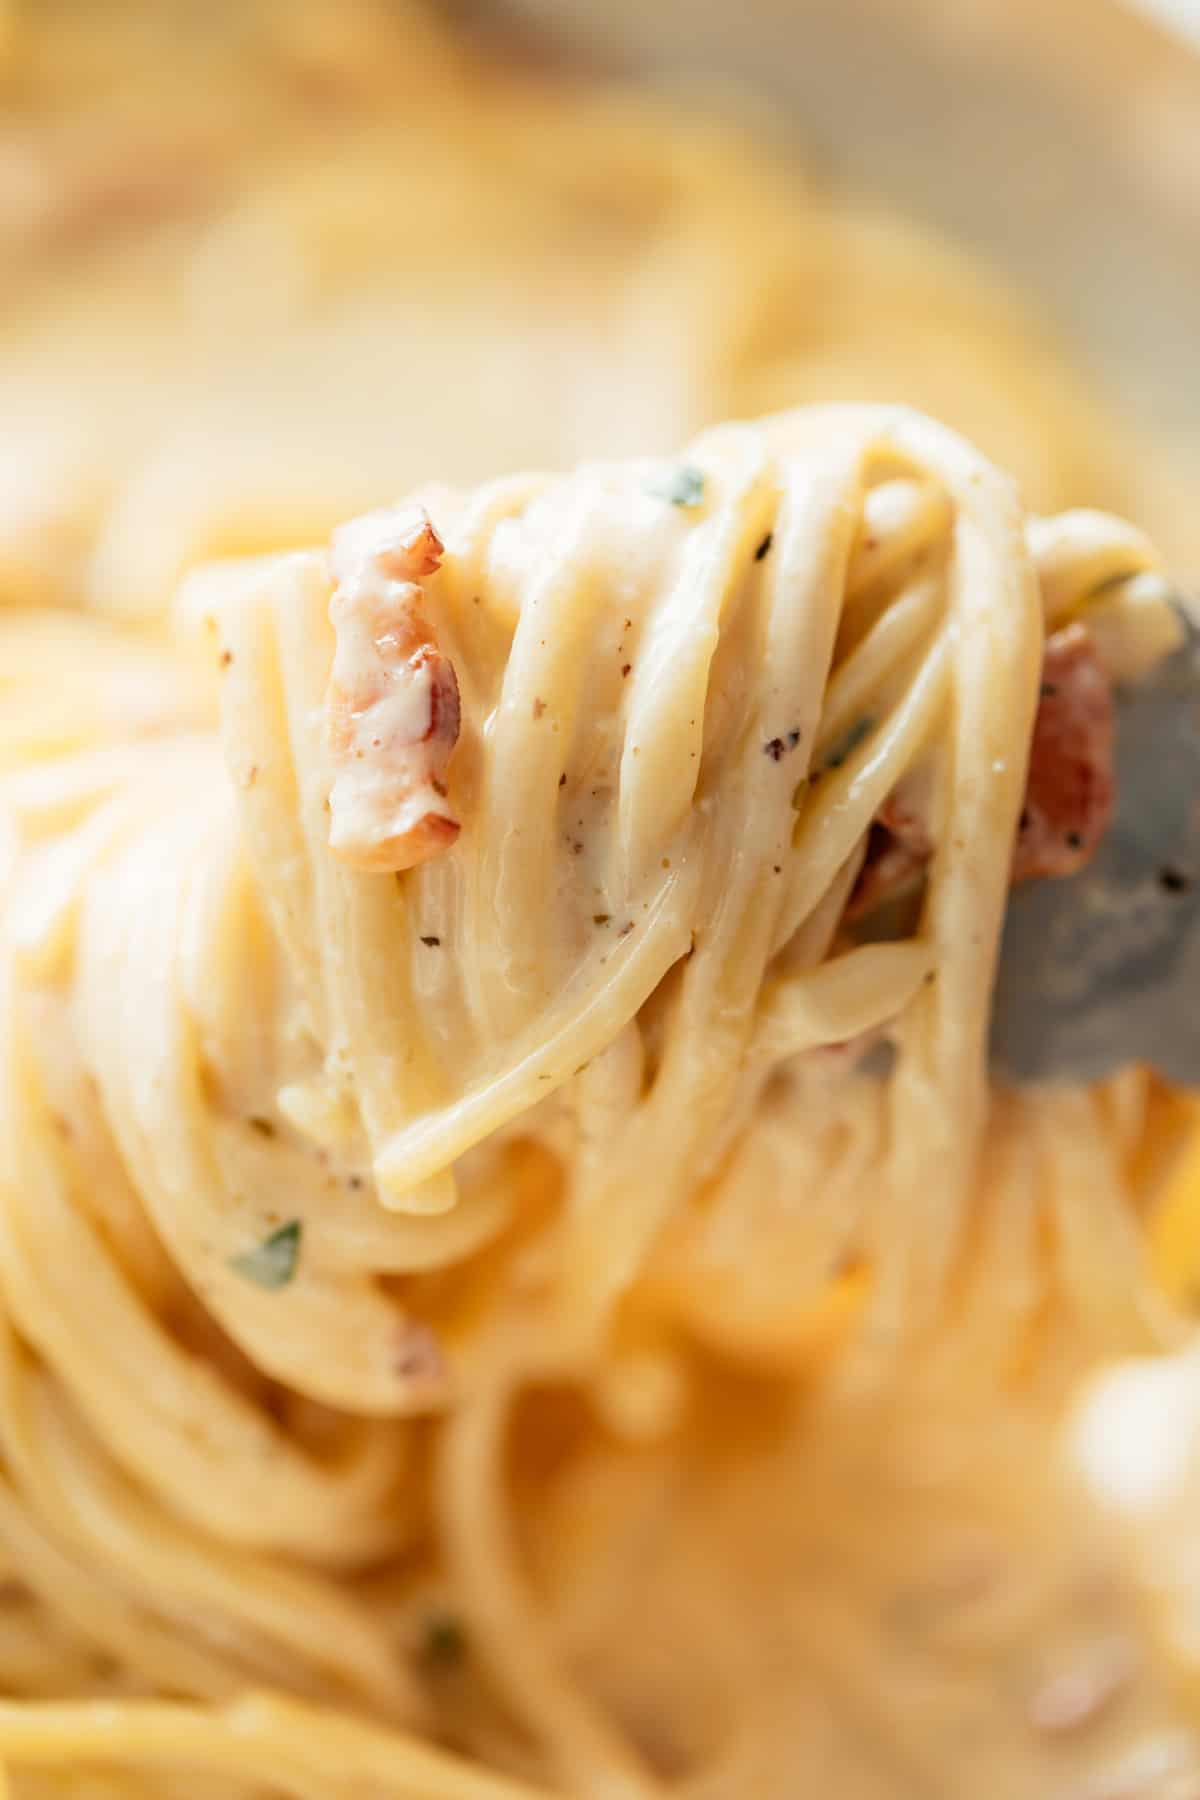 Tongs swirl and pick up Fettuccine Alfredo in a silver pan | craveitall.com